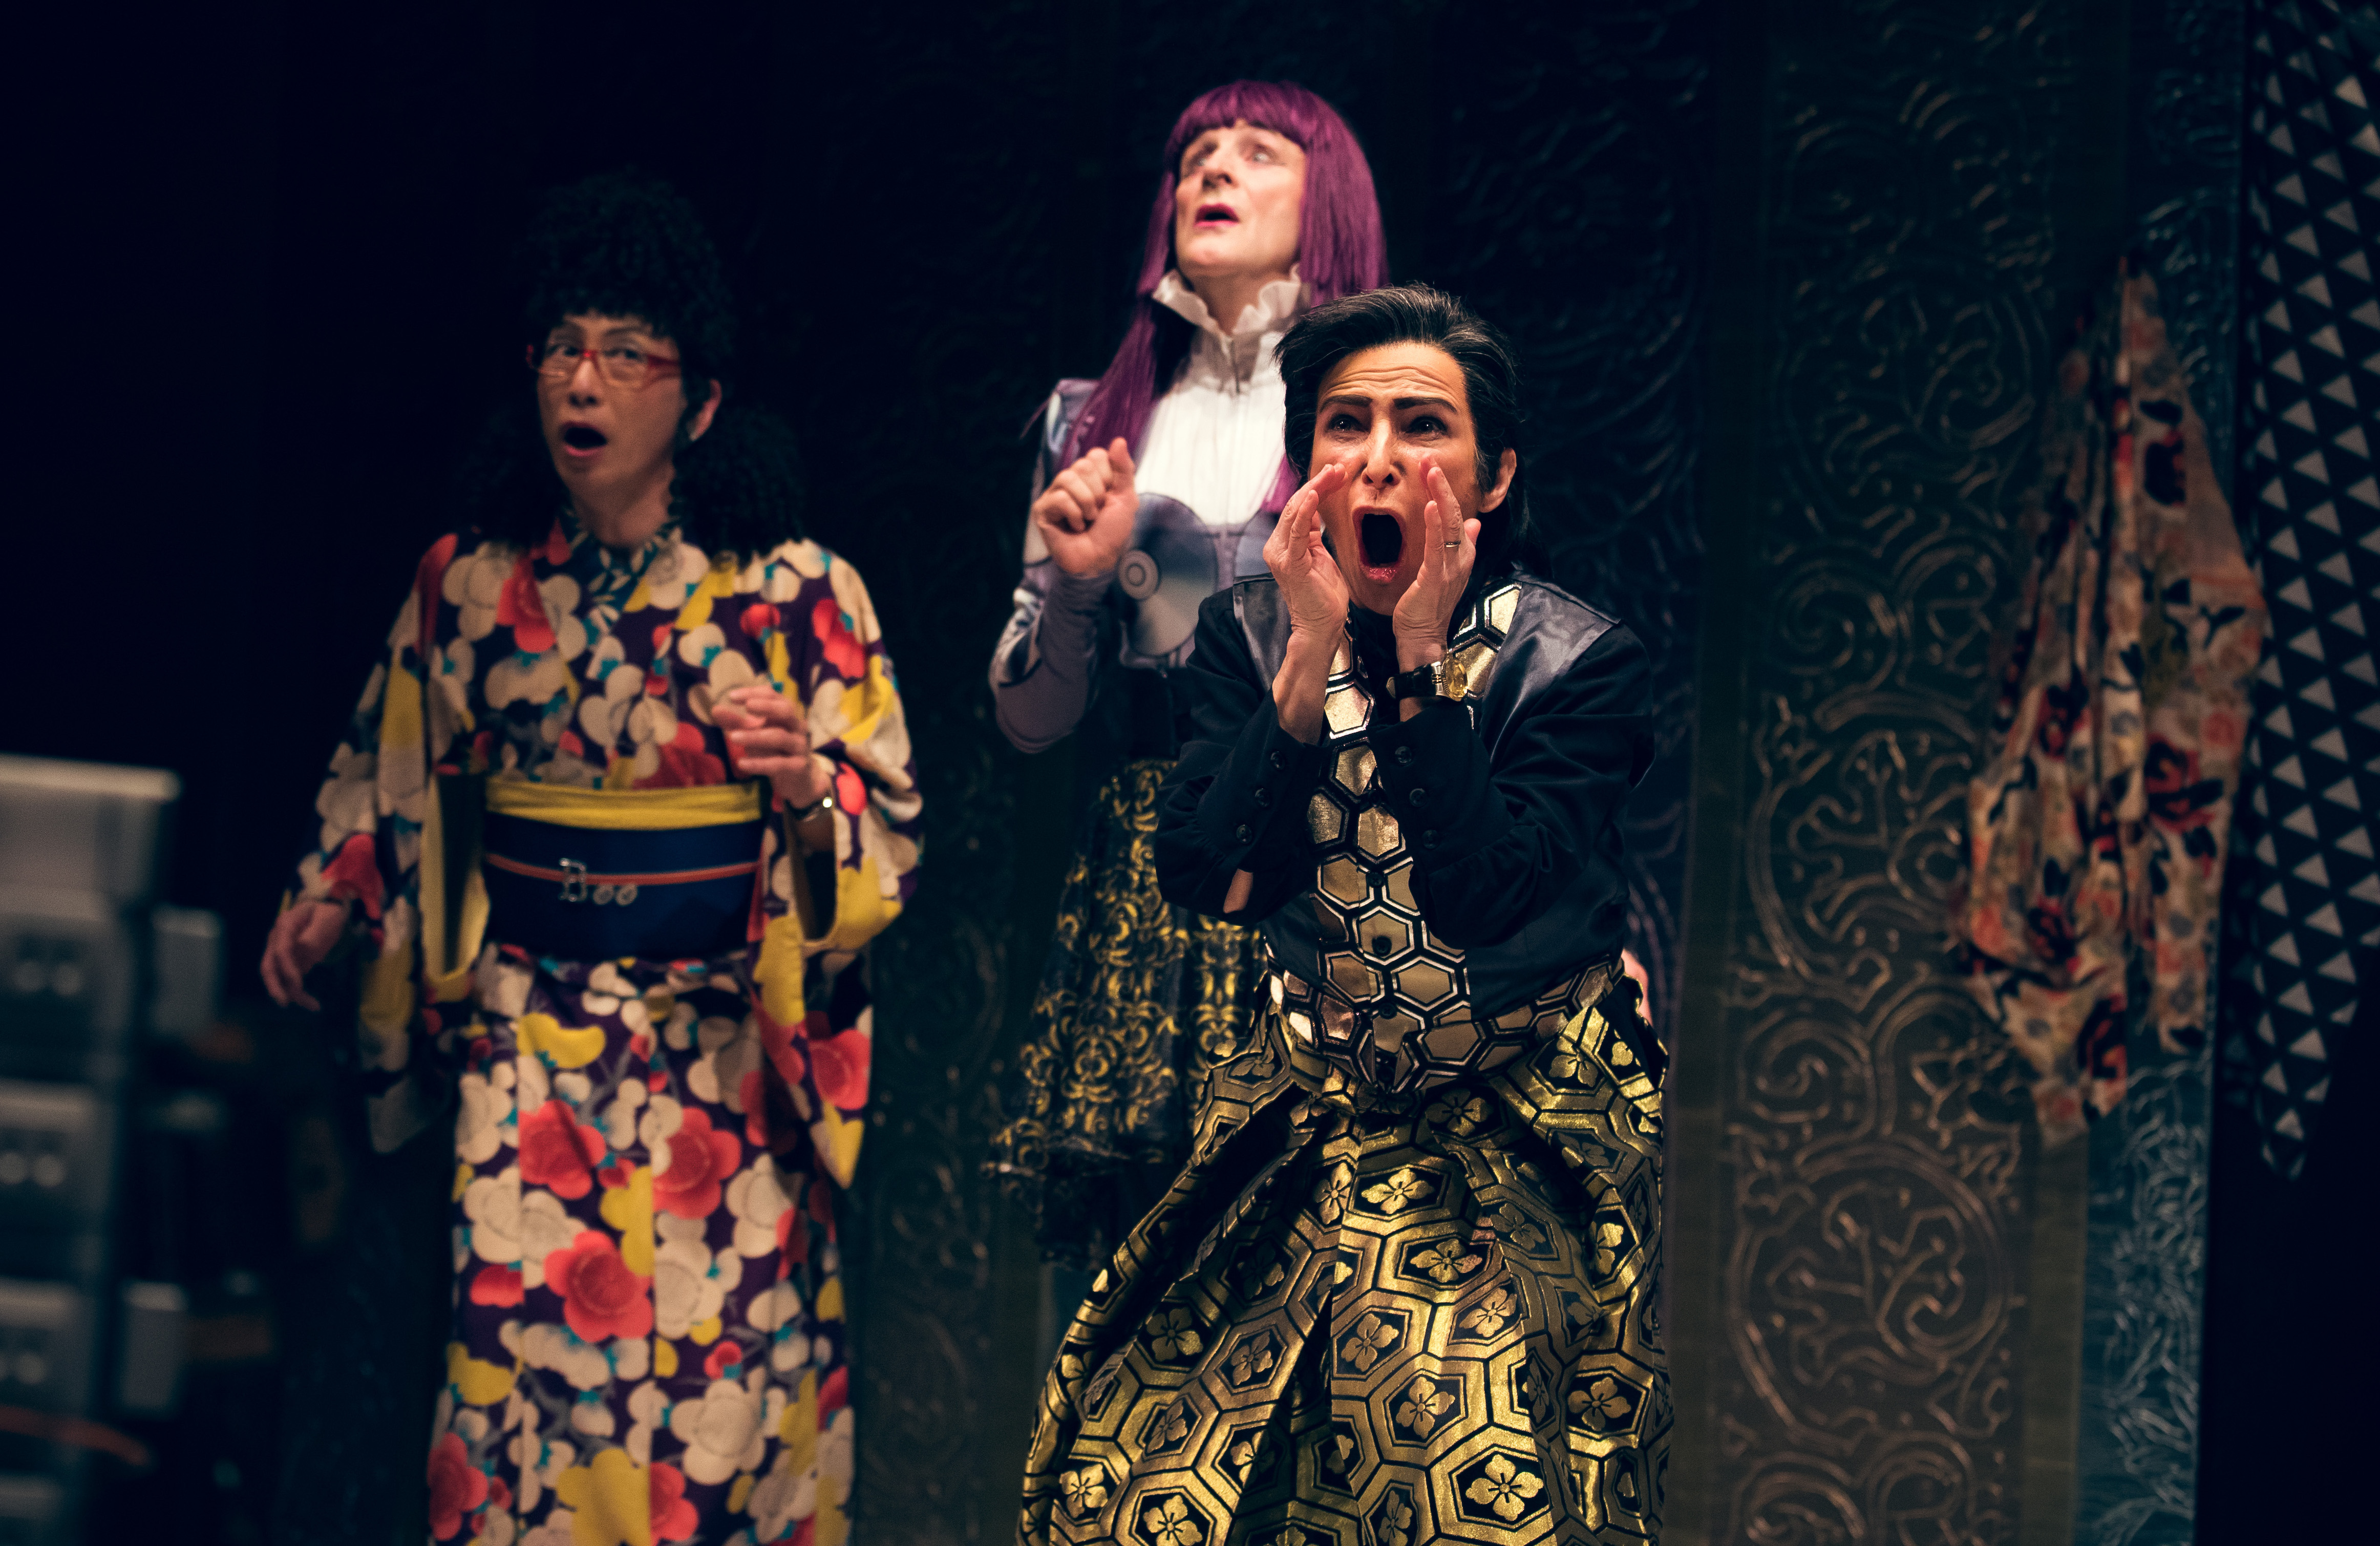 three performers onstage. two are shouting.